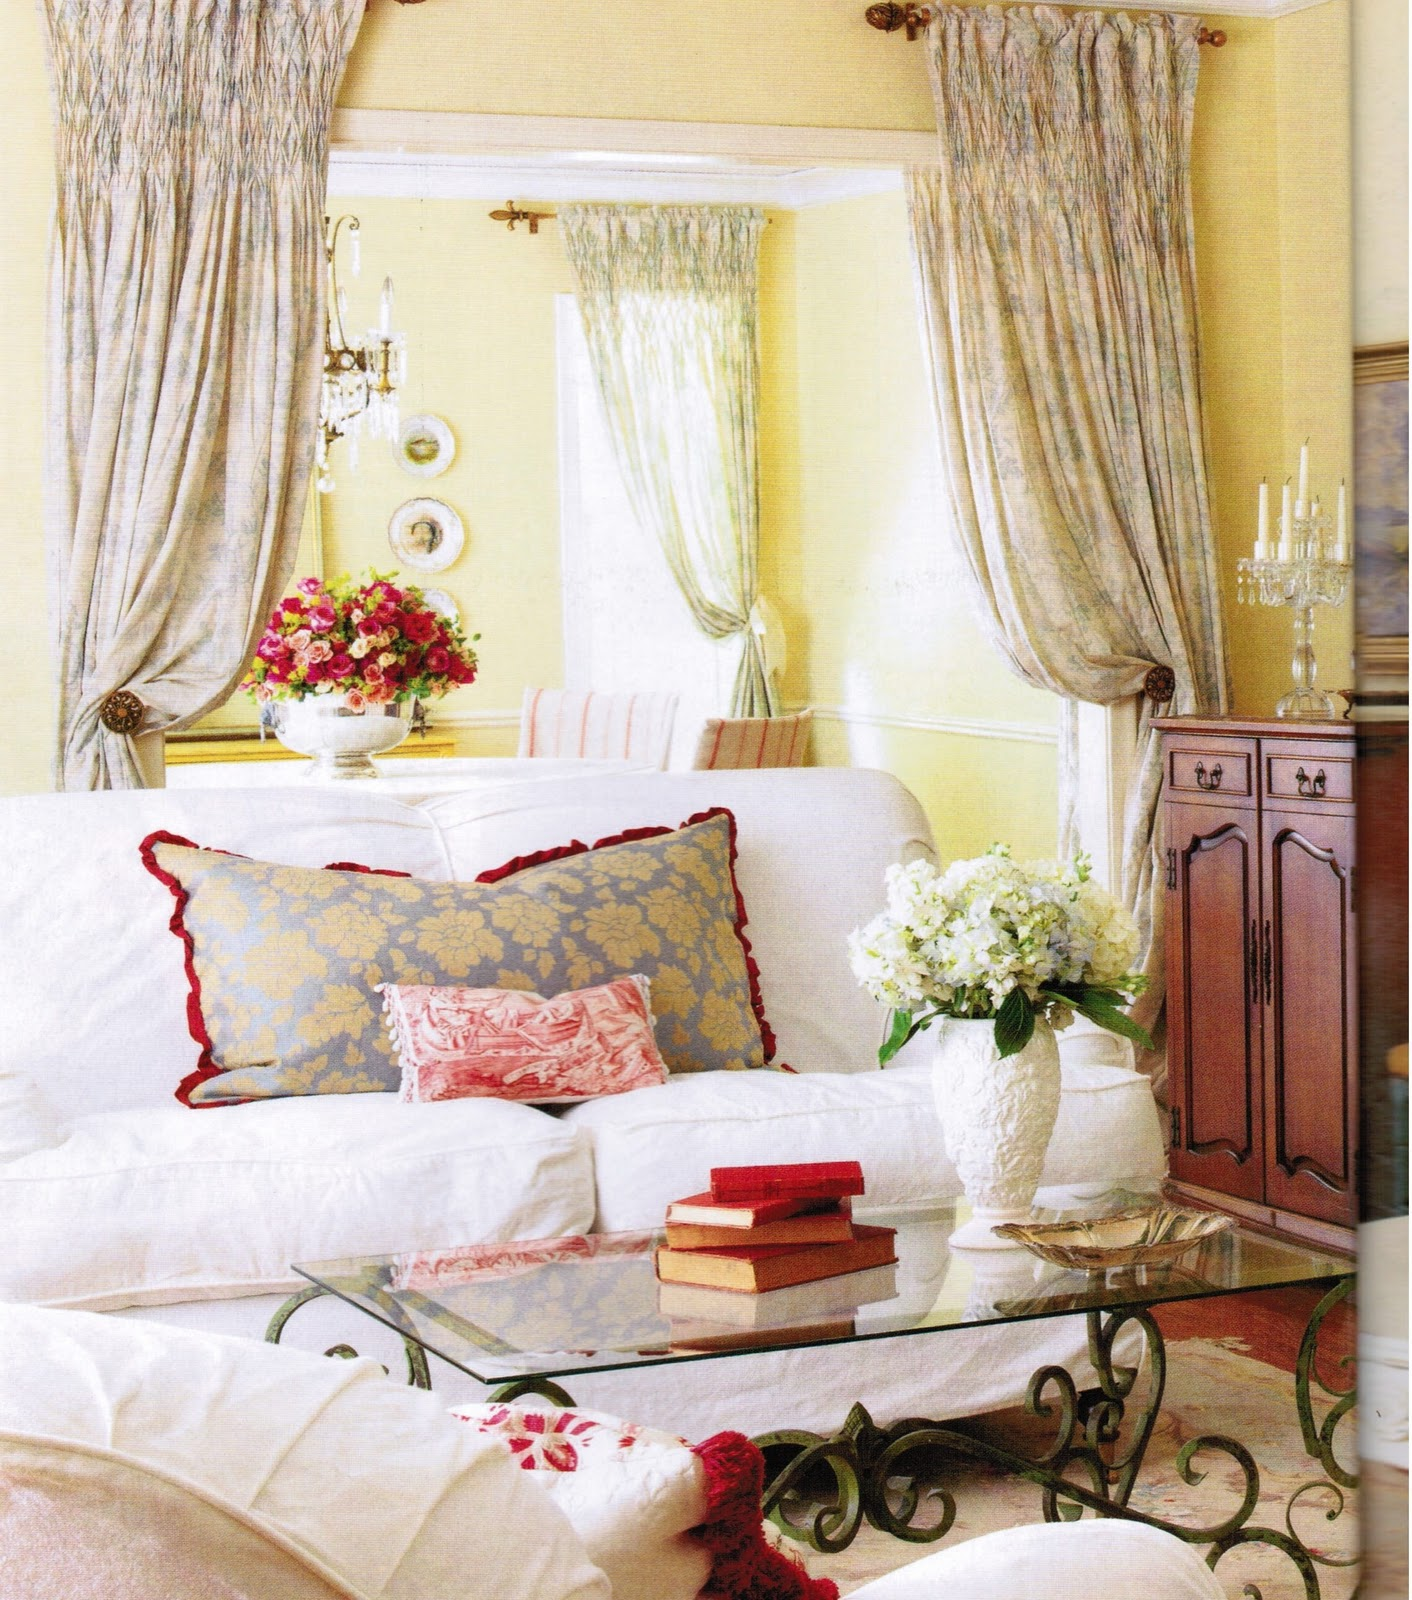 Cottage Home Decorating: Maison Decor: French Country: Enchanting Yellow & White